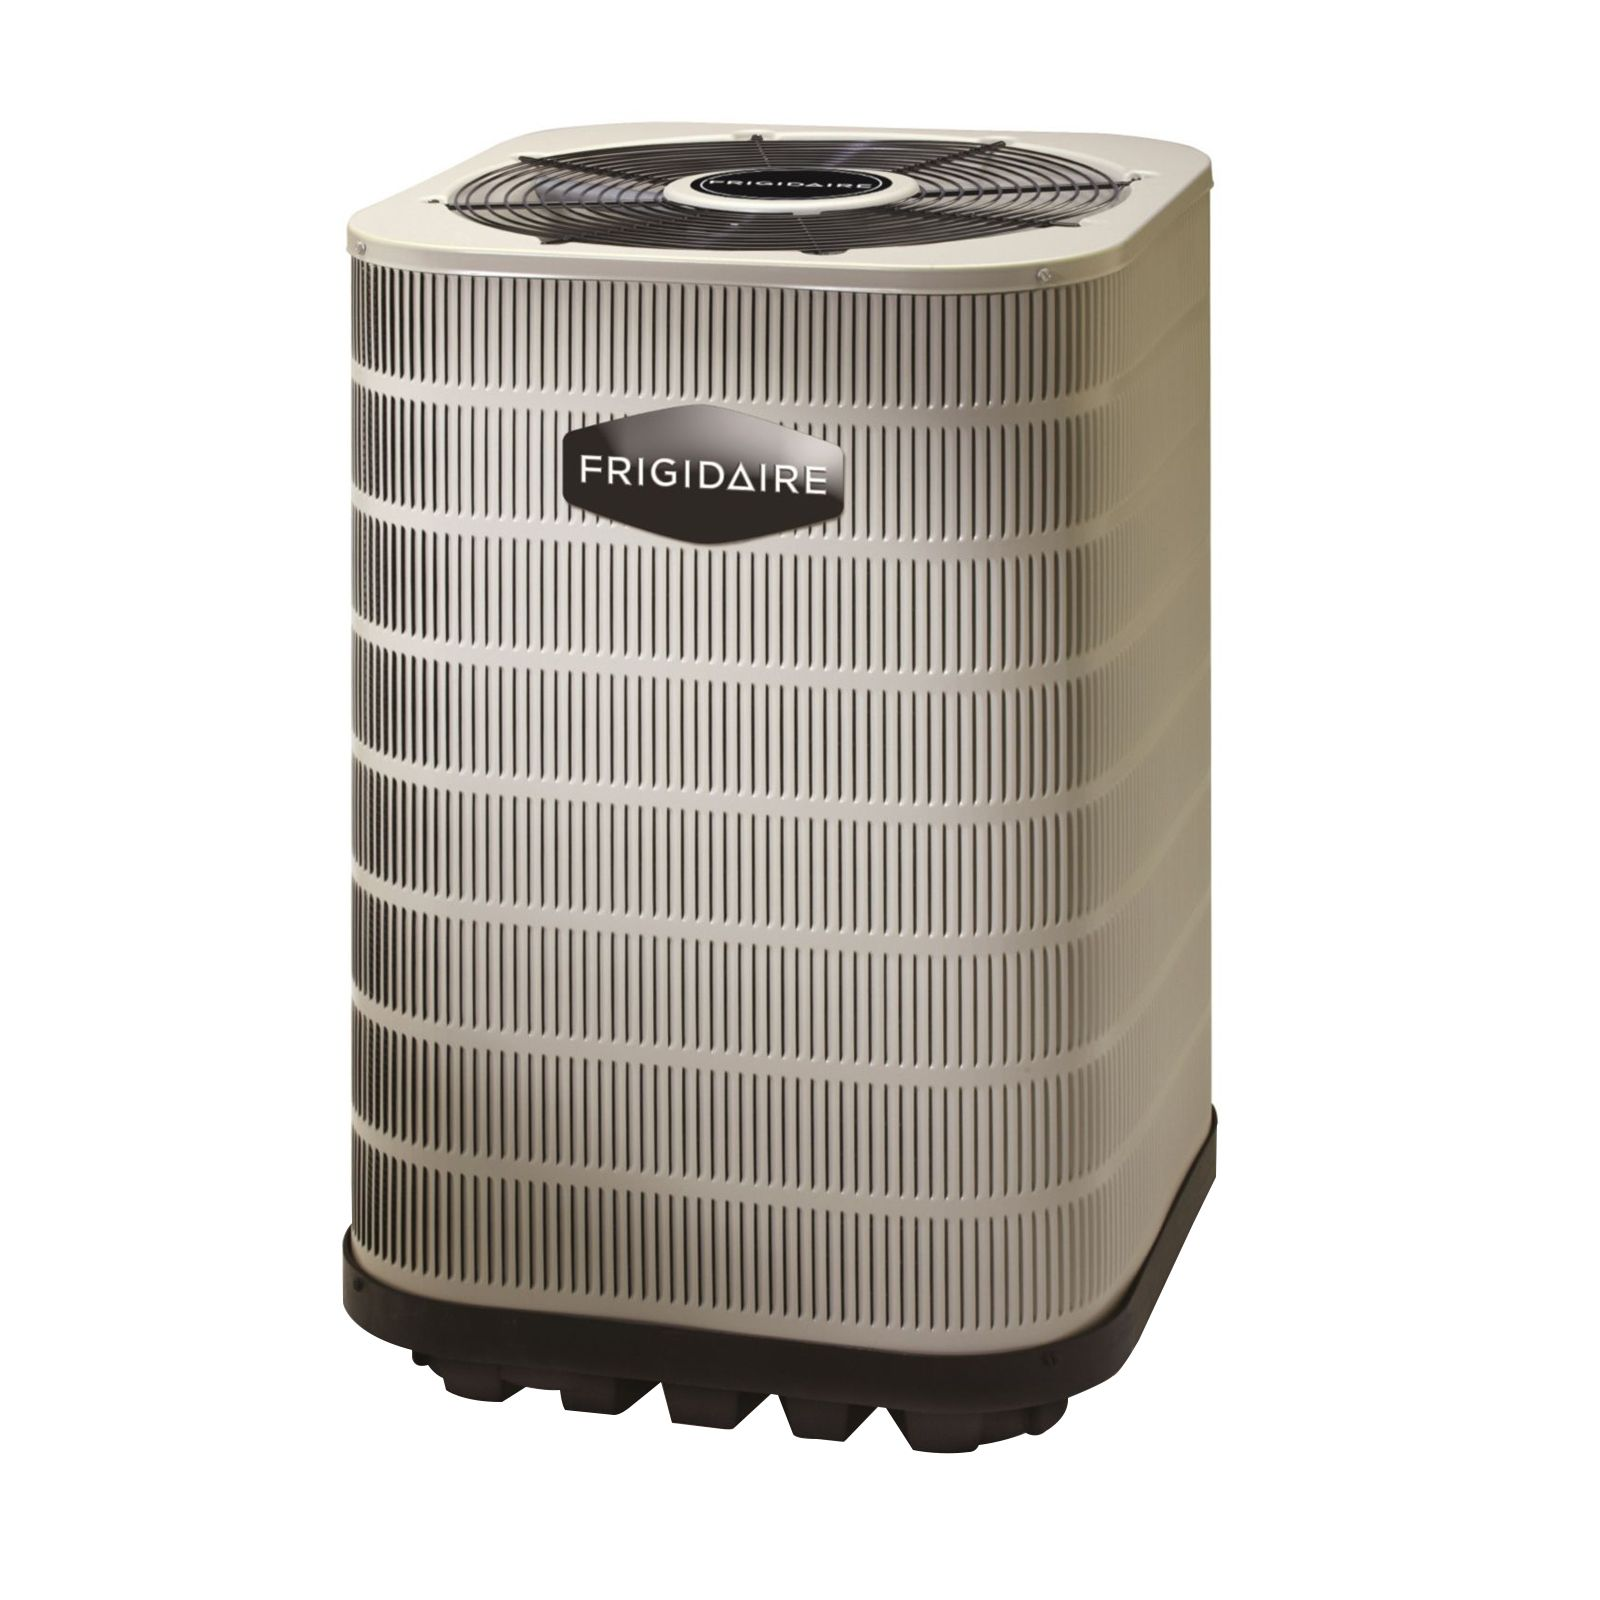 Frigidaire 921984E - ET4BE-036KA - 3 Ton 14 SEER High Efficiency Heat Pump, R410A